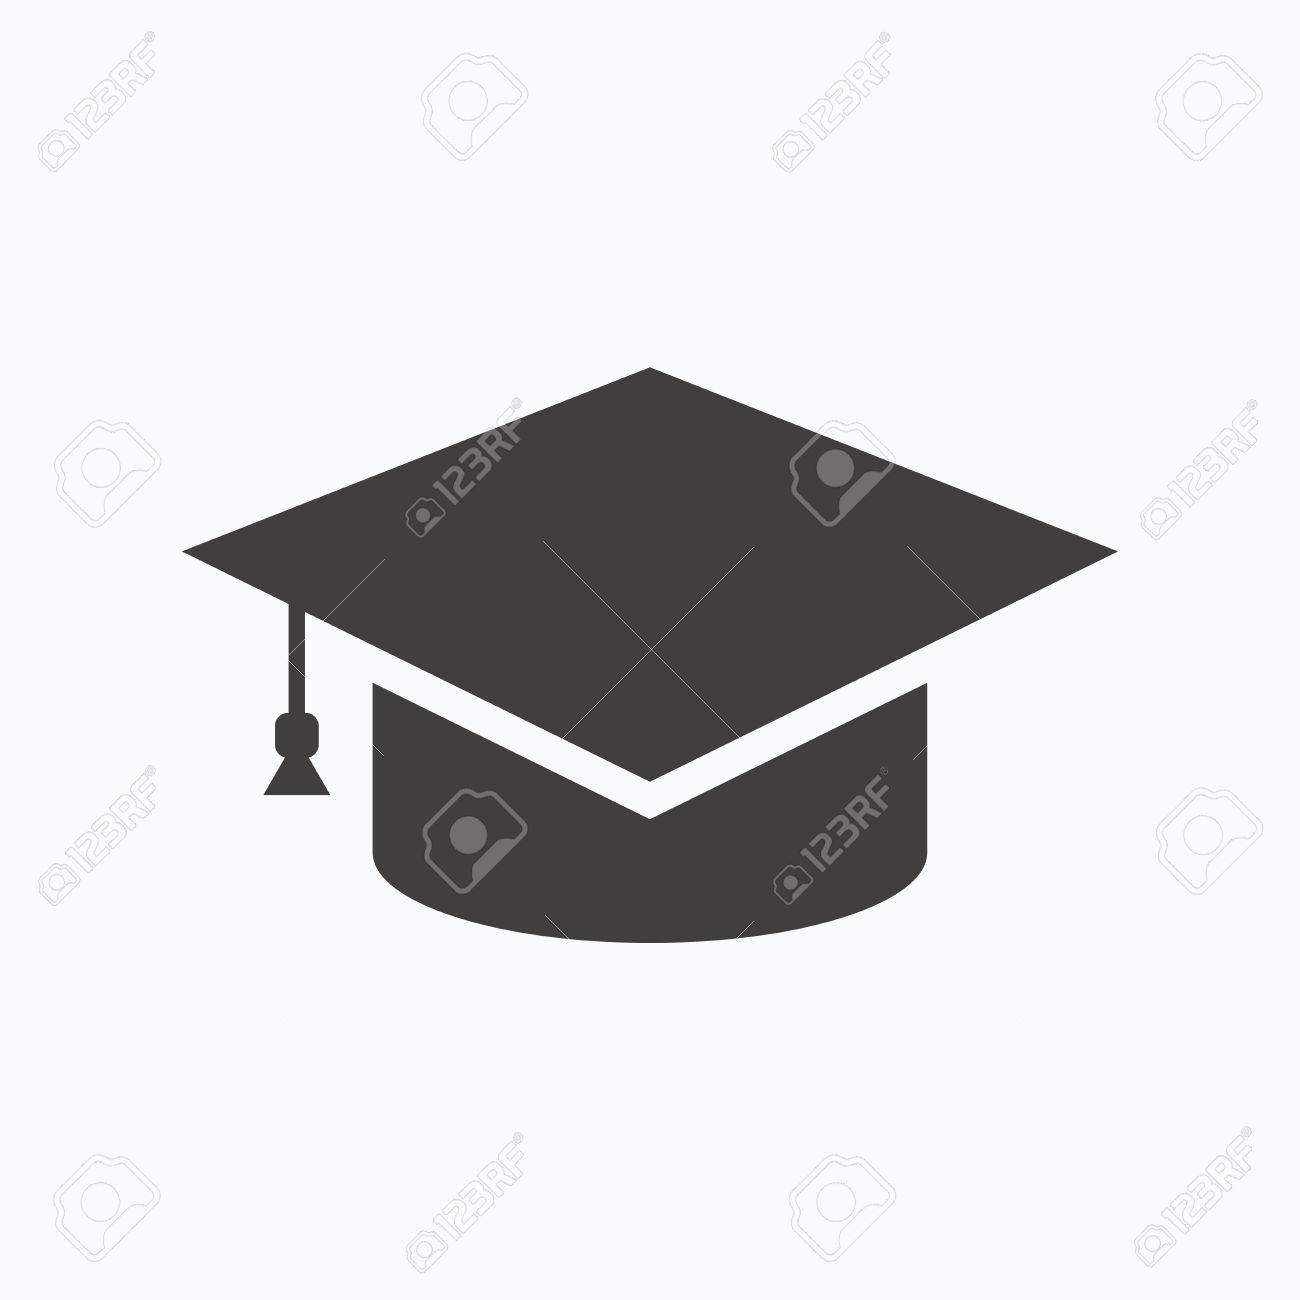 c8c64f5ae8f Education icon. Graduation cap symbol. Gray flat web icon on white  background. Vector